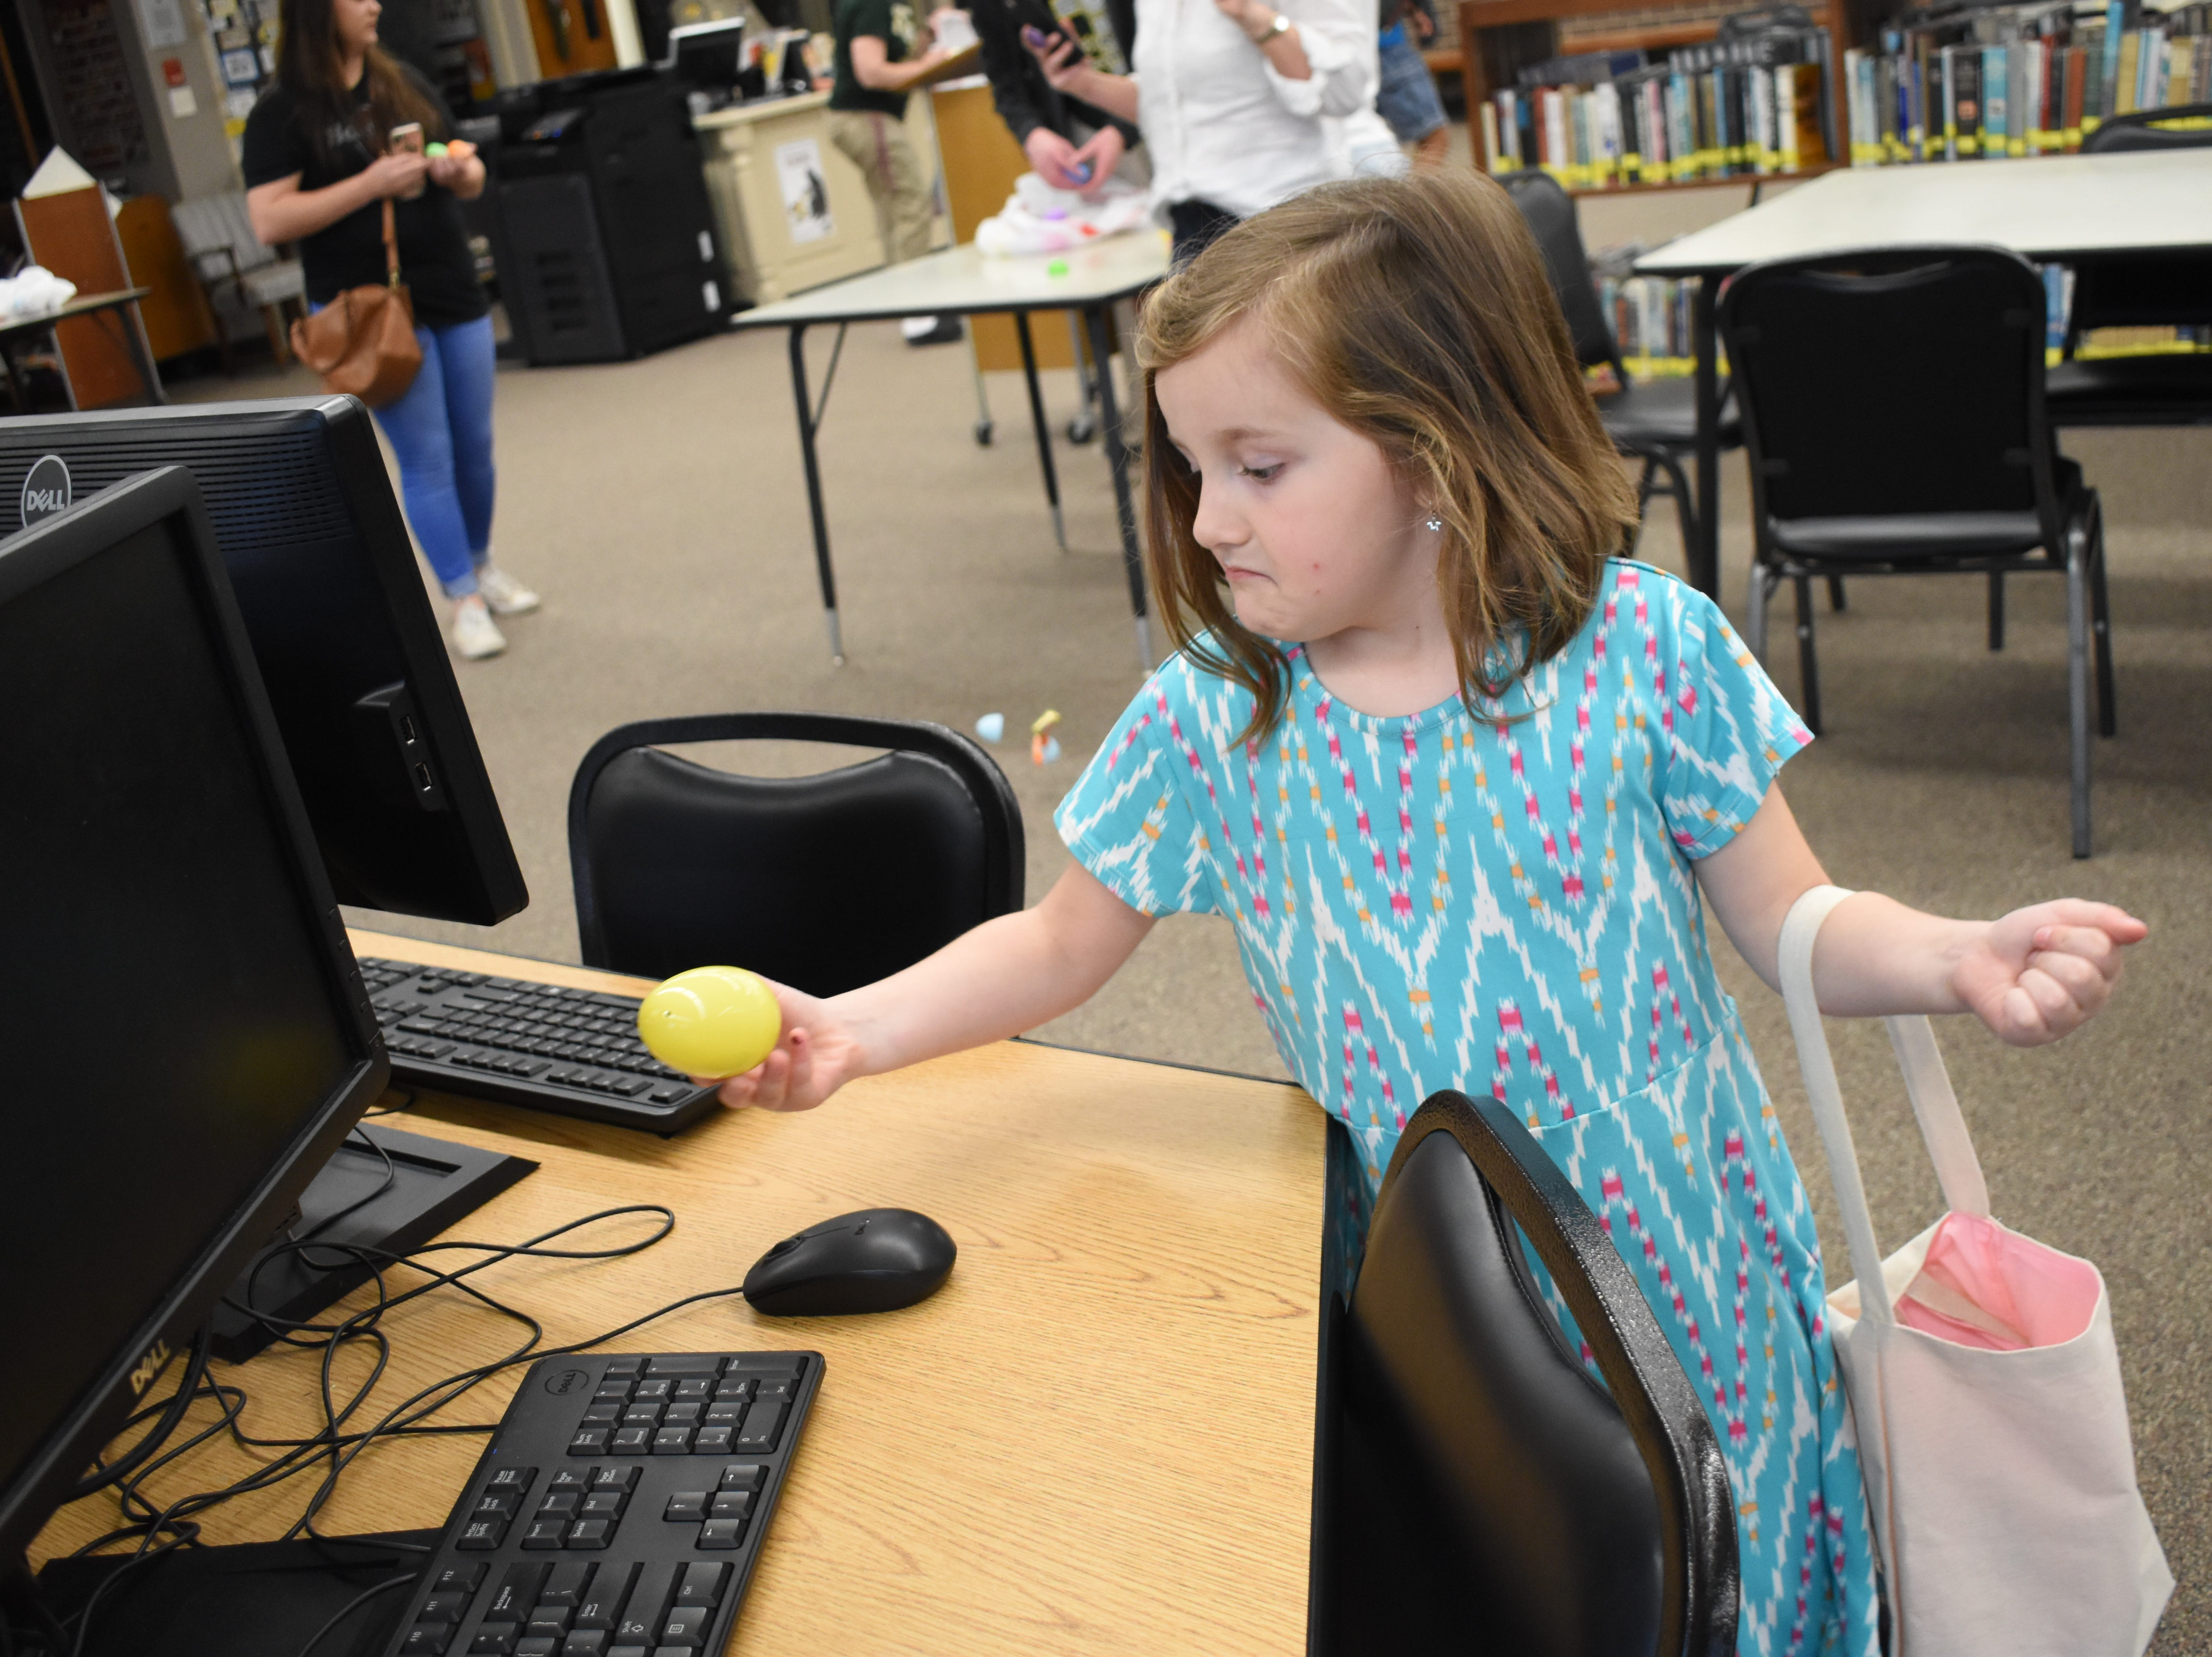 """The Beta Club of Holy Savior Menard High School hosted Easter at the Nest Saturday, April 6, 2019. Matthew Dufrene, a senior and president of the Beta Club, said this was the second year for the event held for children ages 2-10. An Easter egg hunt was held in the library and other activities included egg dying, coloring, a Peep toss and egg toss. Dufrene said the numbers 1,2 and 3 were hidden in some plastic eggs. Those numbers would win some children a chocolate Easter bunny prize. The numbers corresponded to the size of the chocolate bunny with """"1"""" being the biggest."""